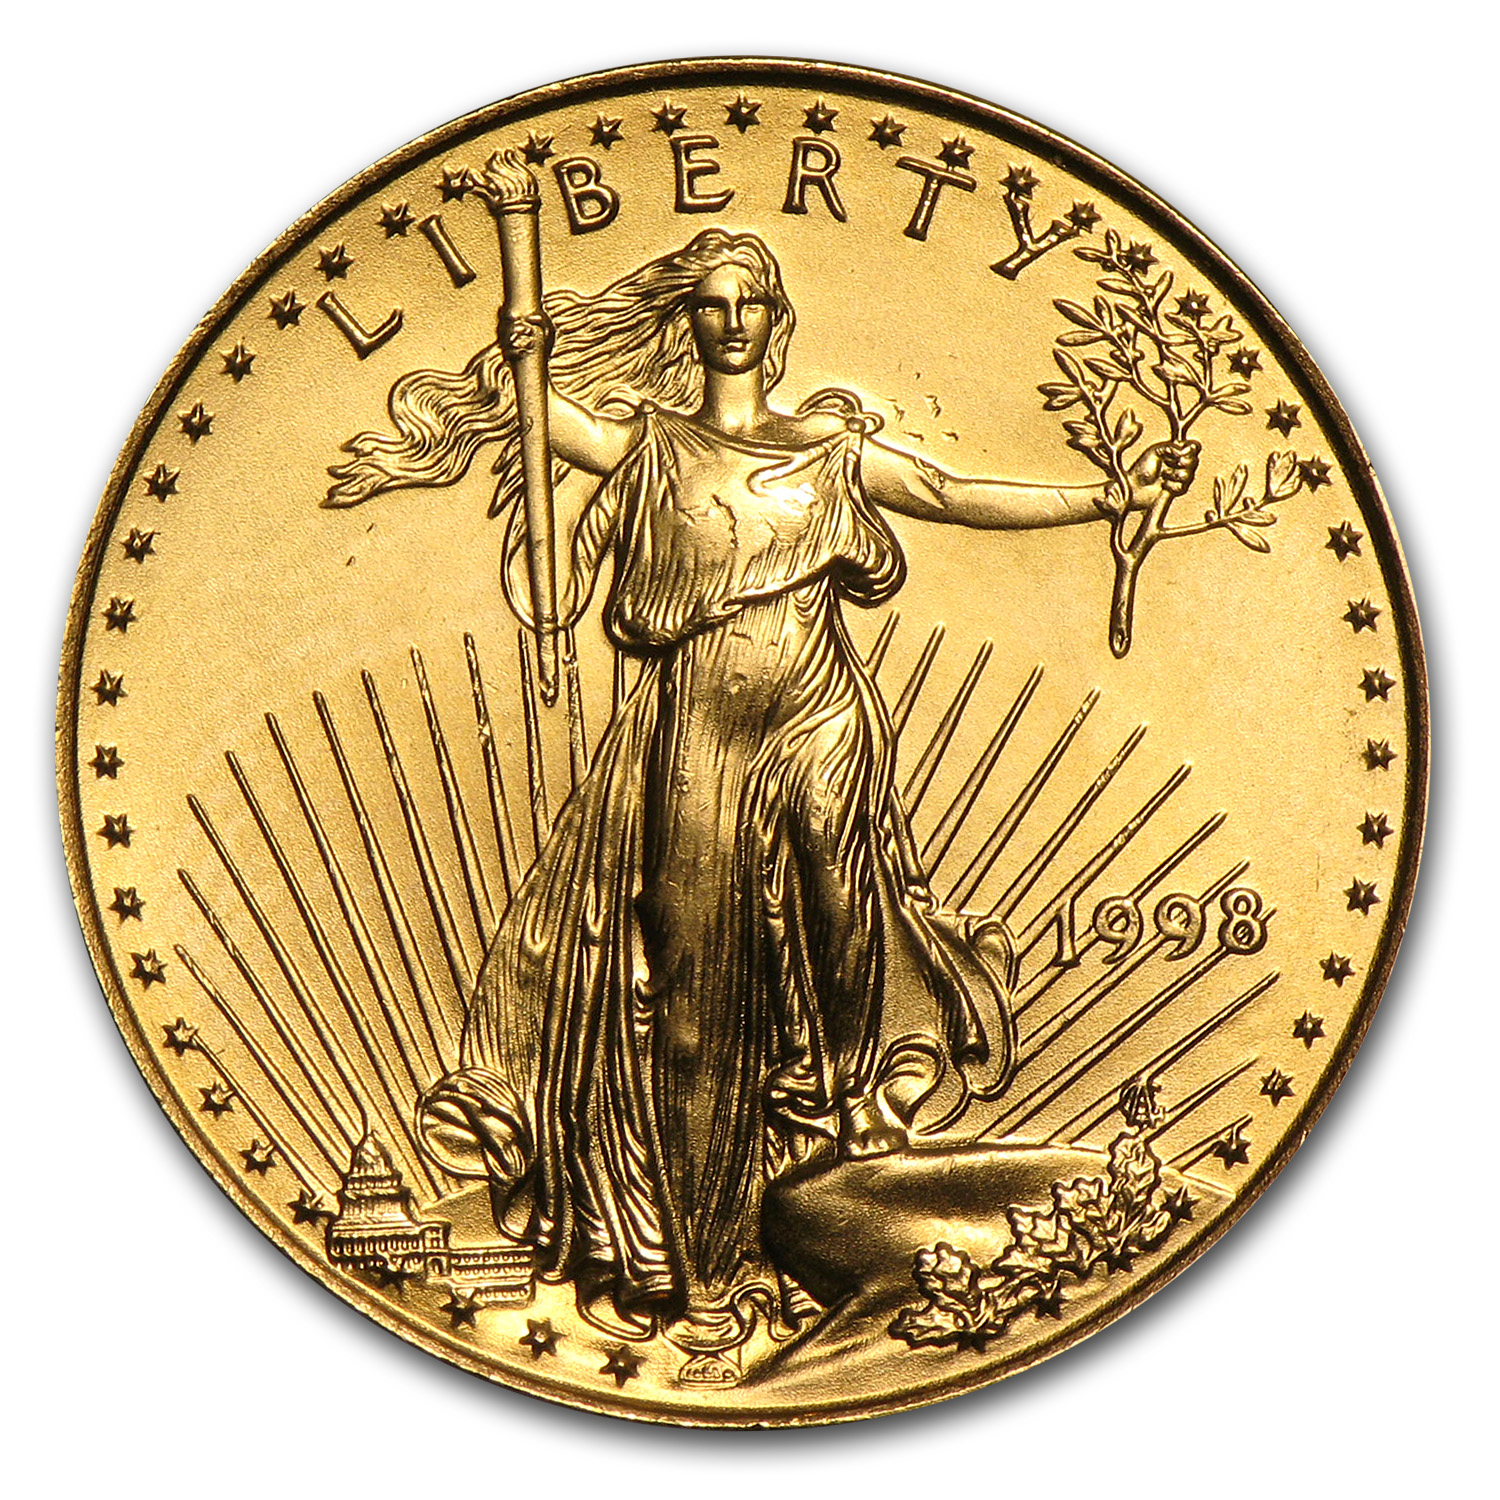 1998 1/4 oz Gold American Eagle BU